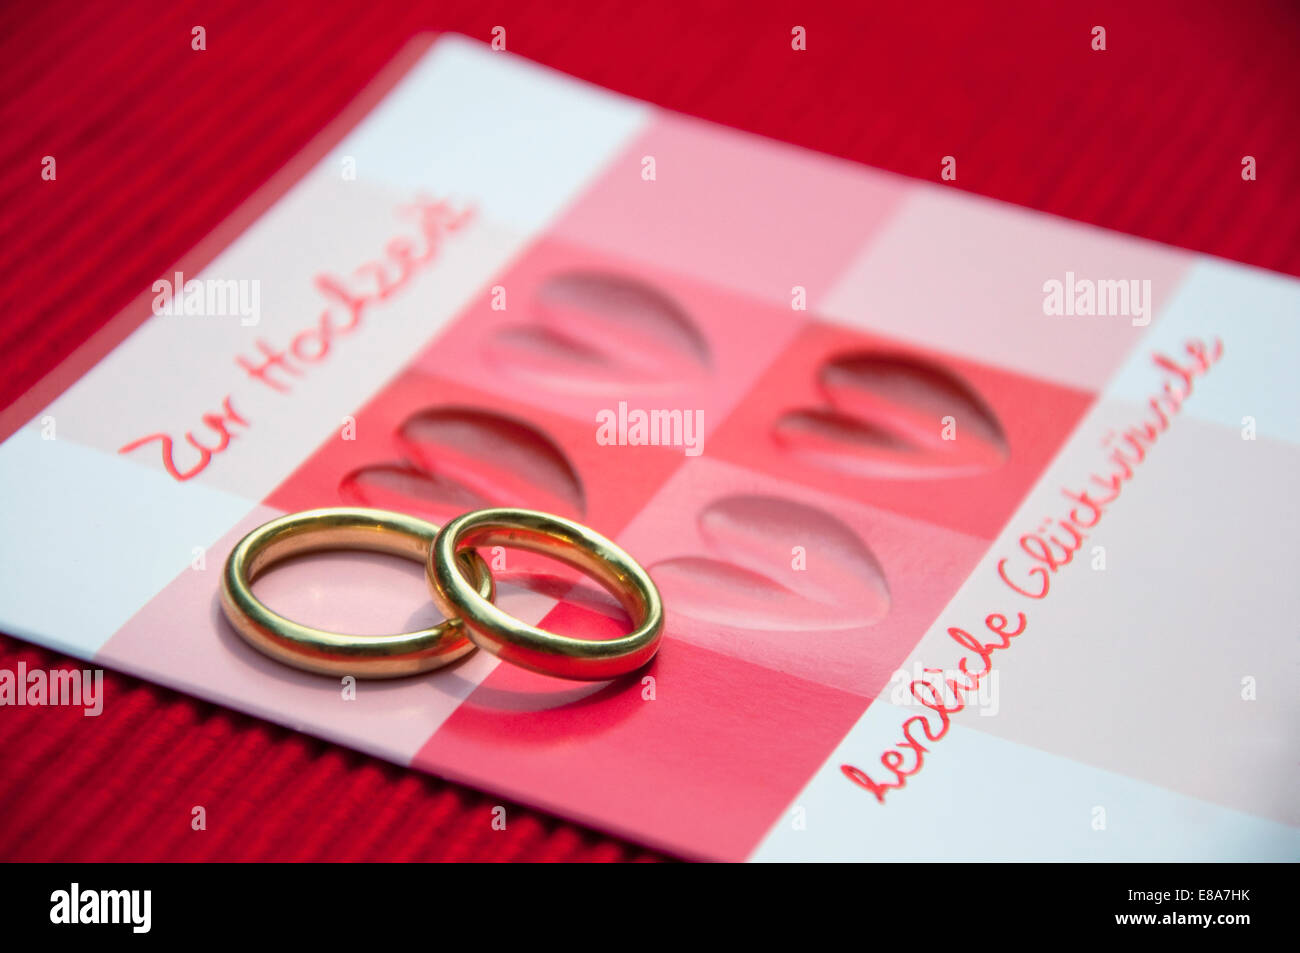 Gold Wedding Rings Heart Card Stock Photos & Gold Wedding Rings ...